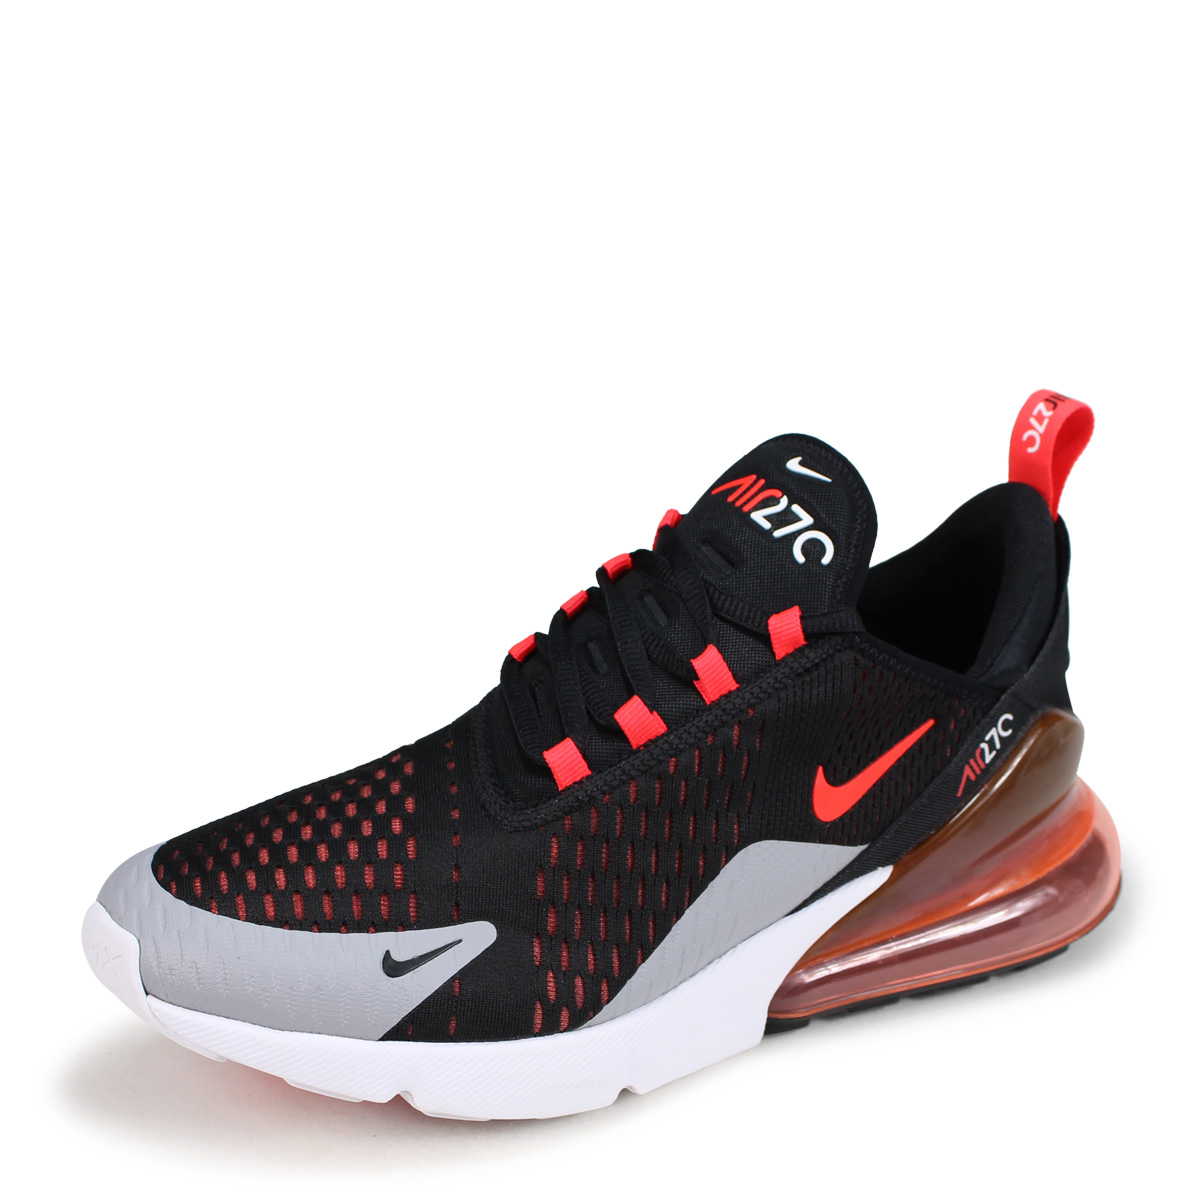 NIKE AIR MAX 270 Kie Ney AMAX 270 sneakers men AH8050-015 black  load  planned Shinnyu load in reservation product 10 3 containing   189  2a50b46152